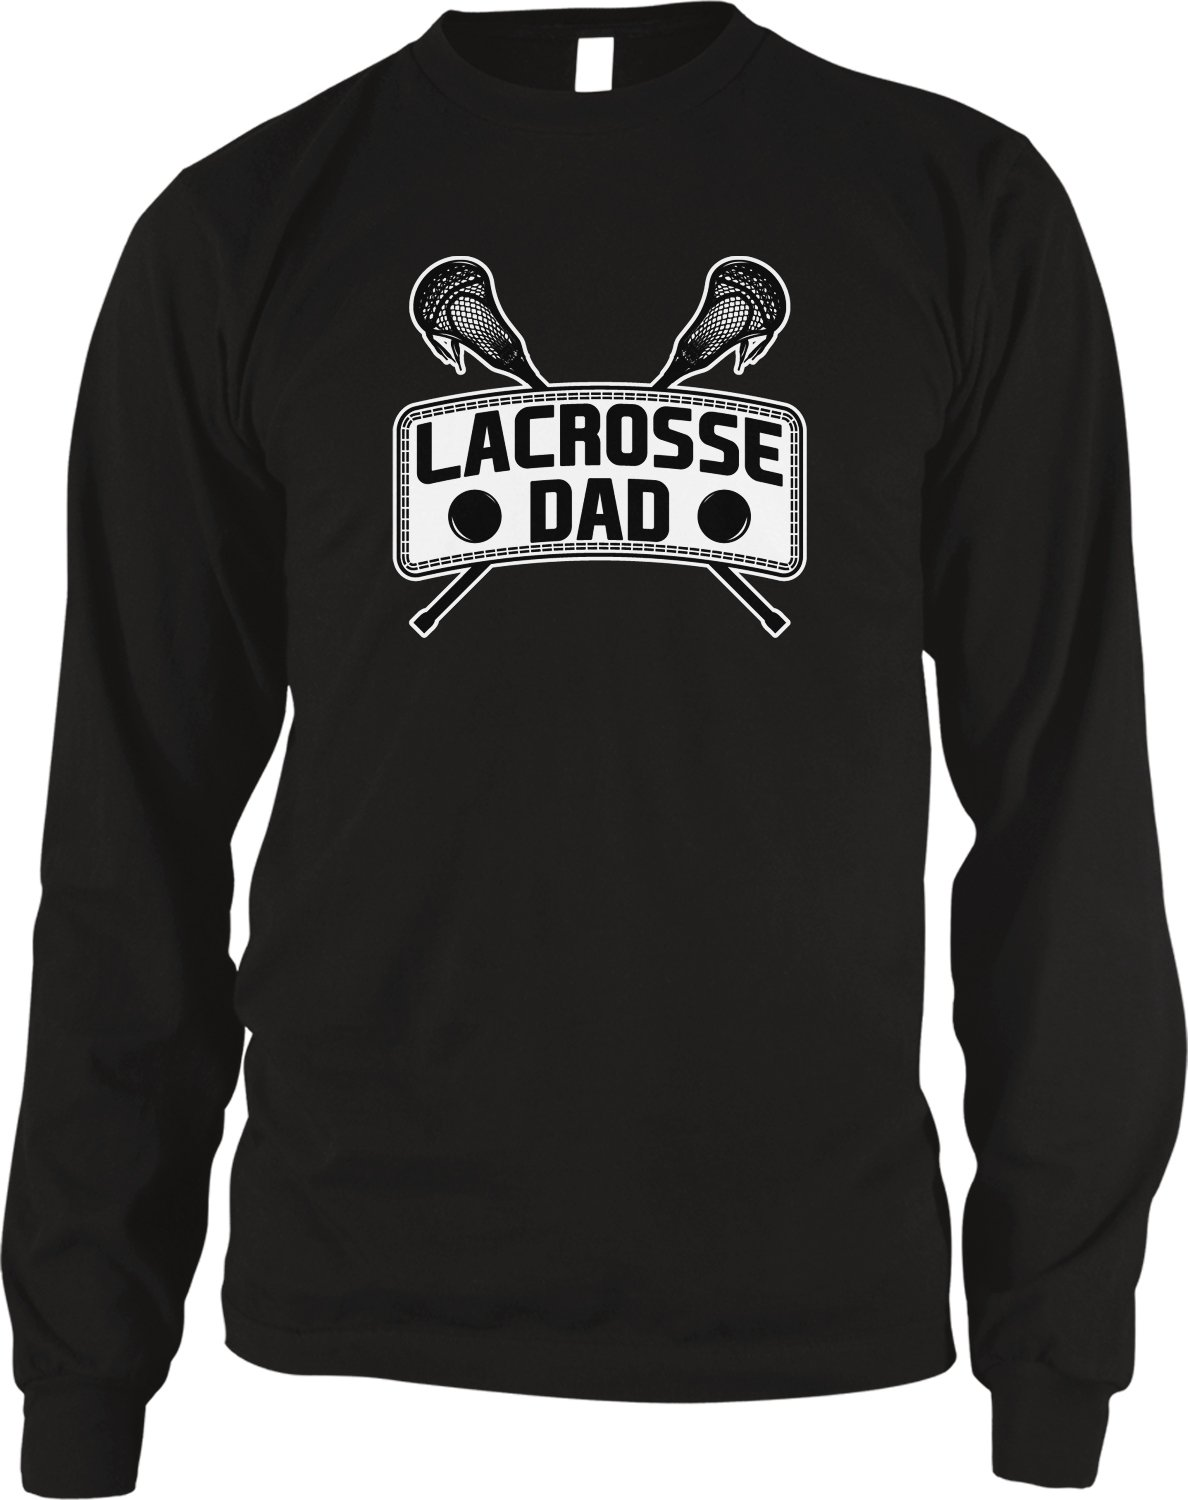 Lacrosse Dad,  Lax Dad Thermal Shirts